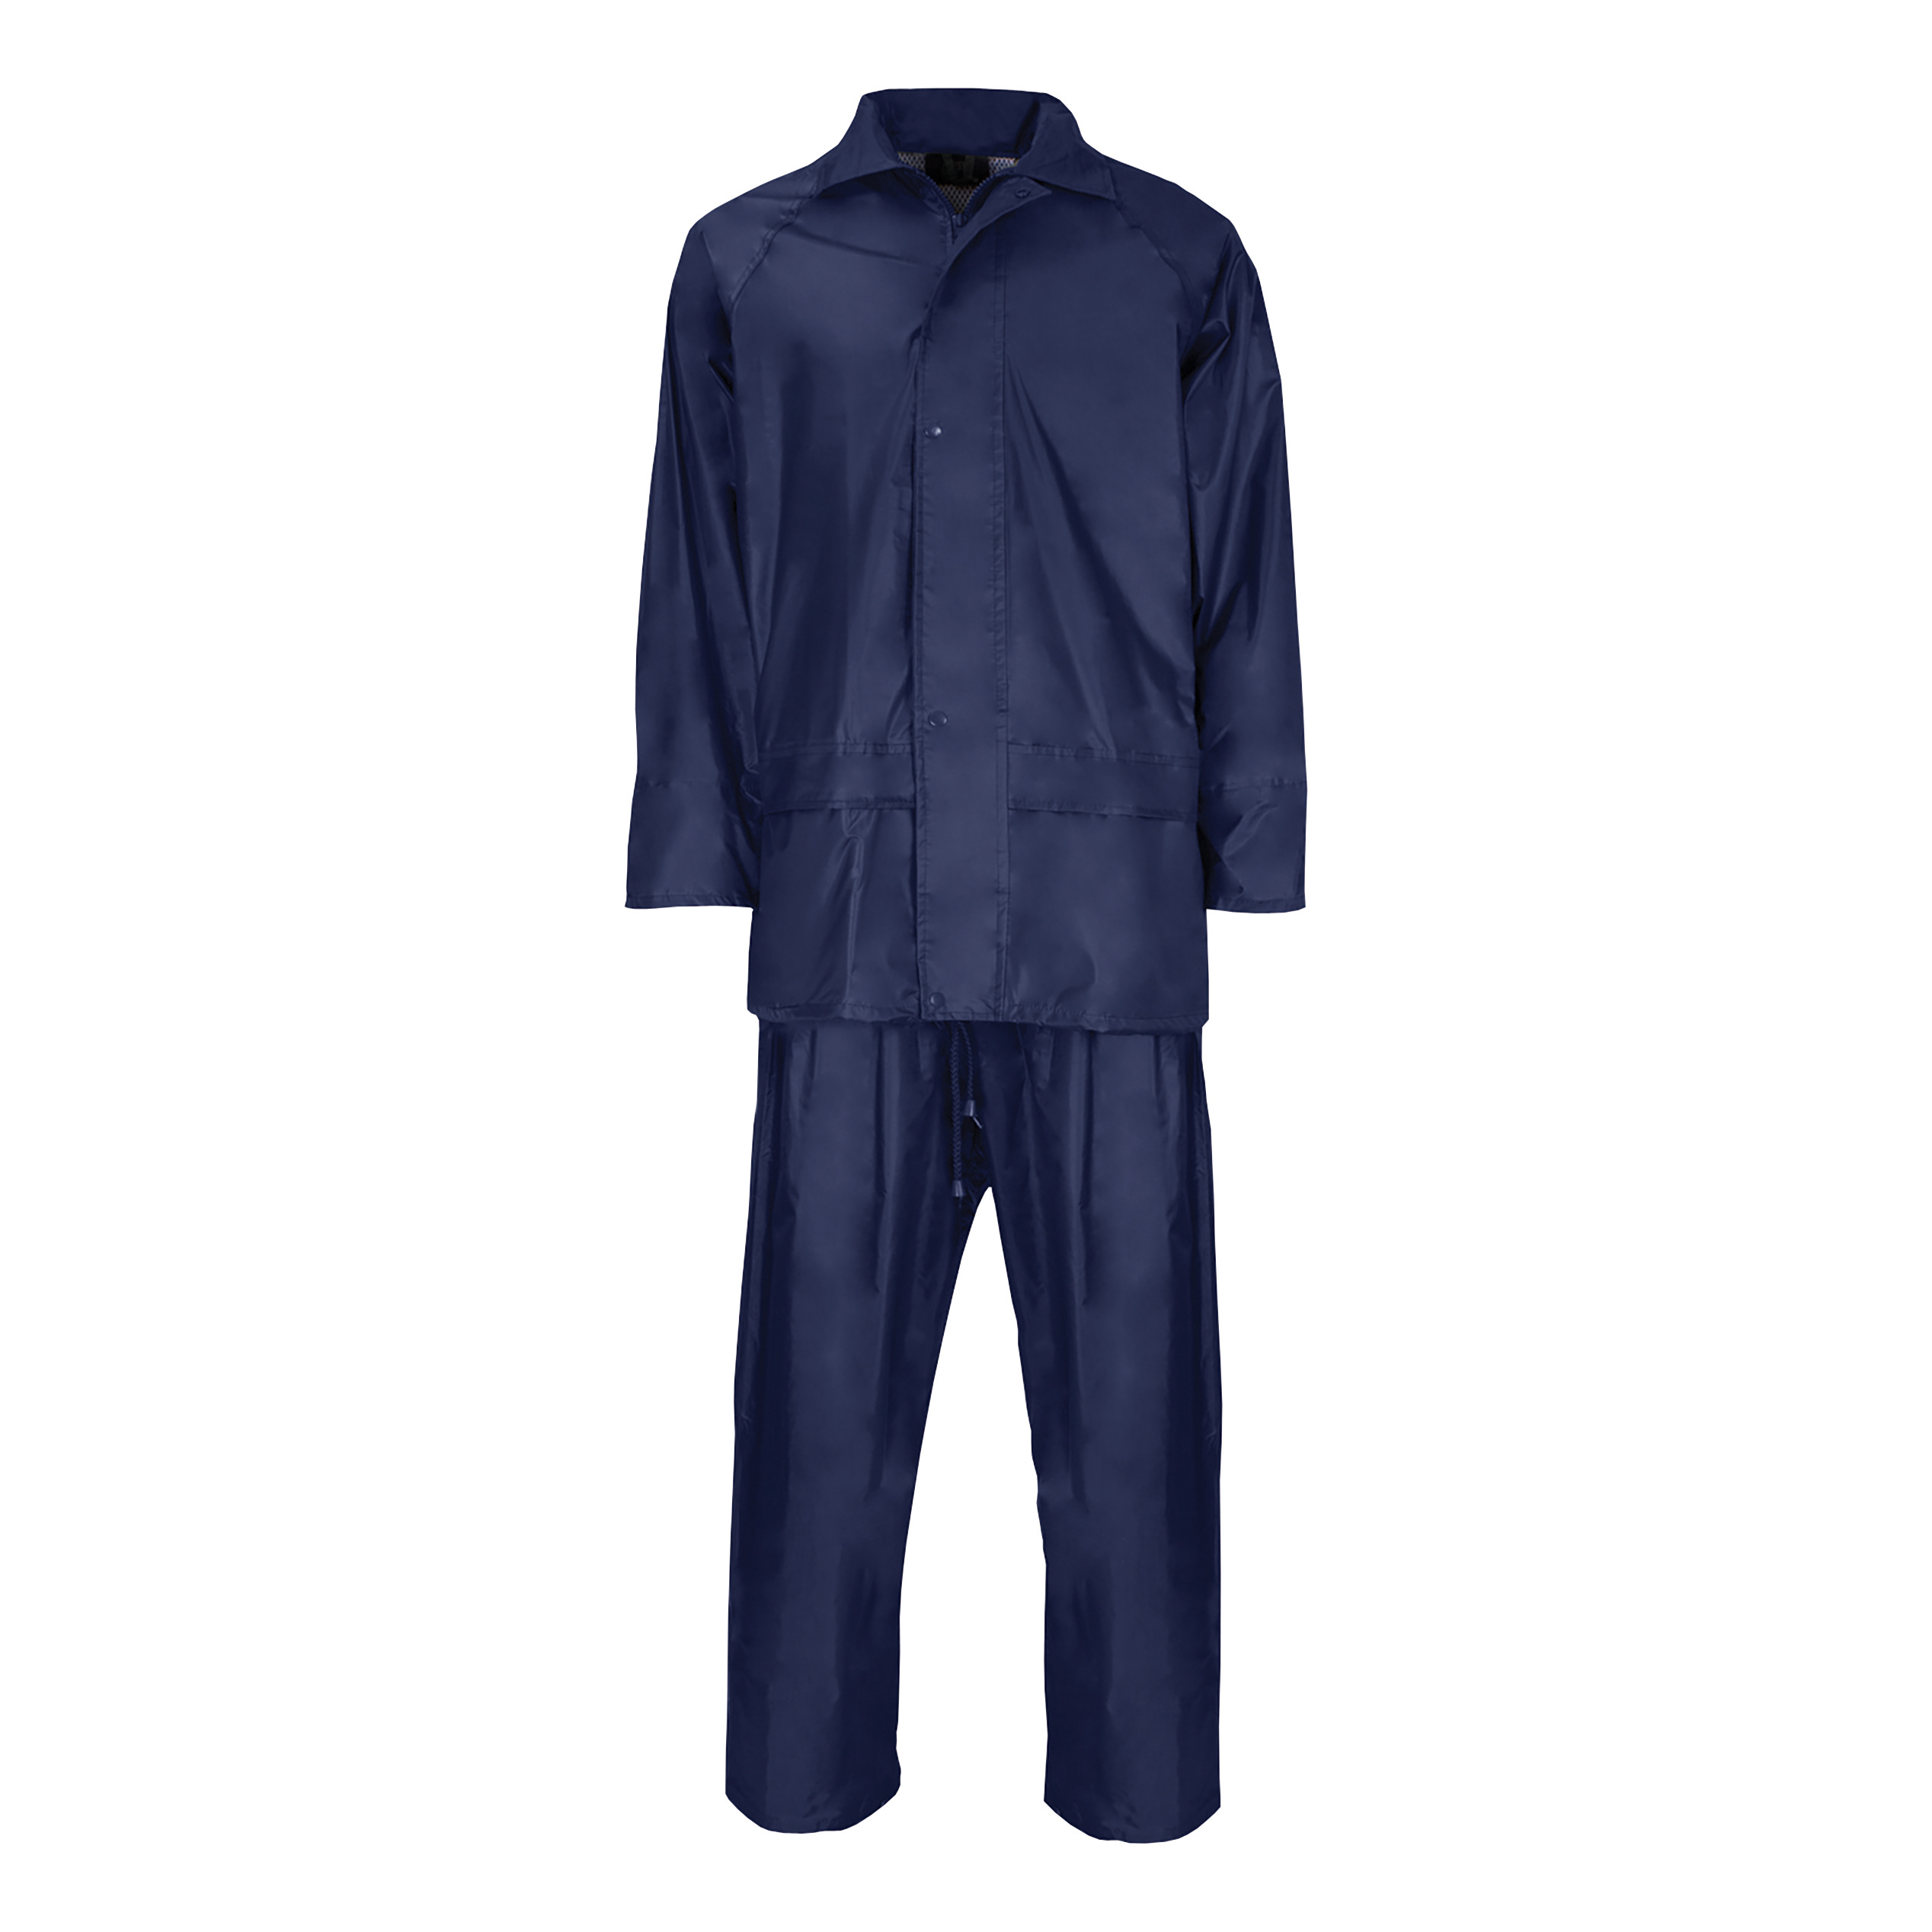 Rainsuit Poly/PVC with Elasticated Waisted Trousers 2XL Navy Ref NBDSNXXL *Approx 3 Day Leadtime*